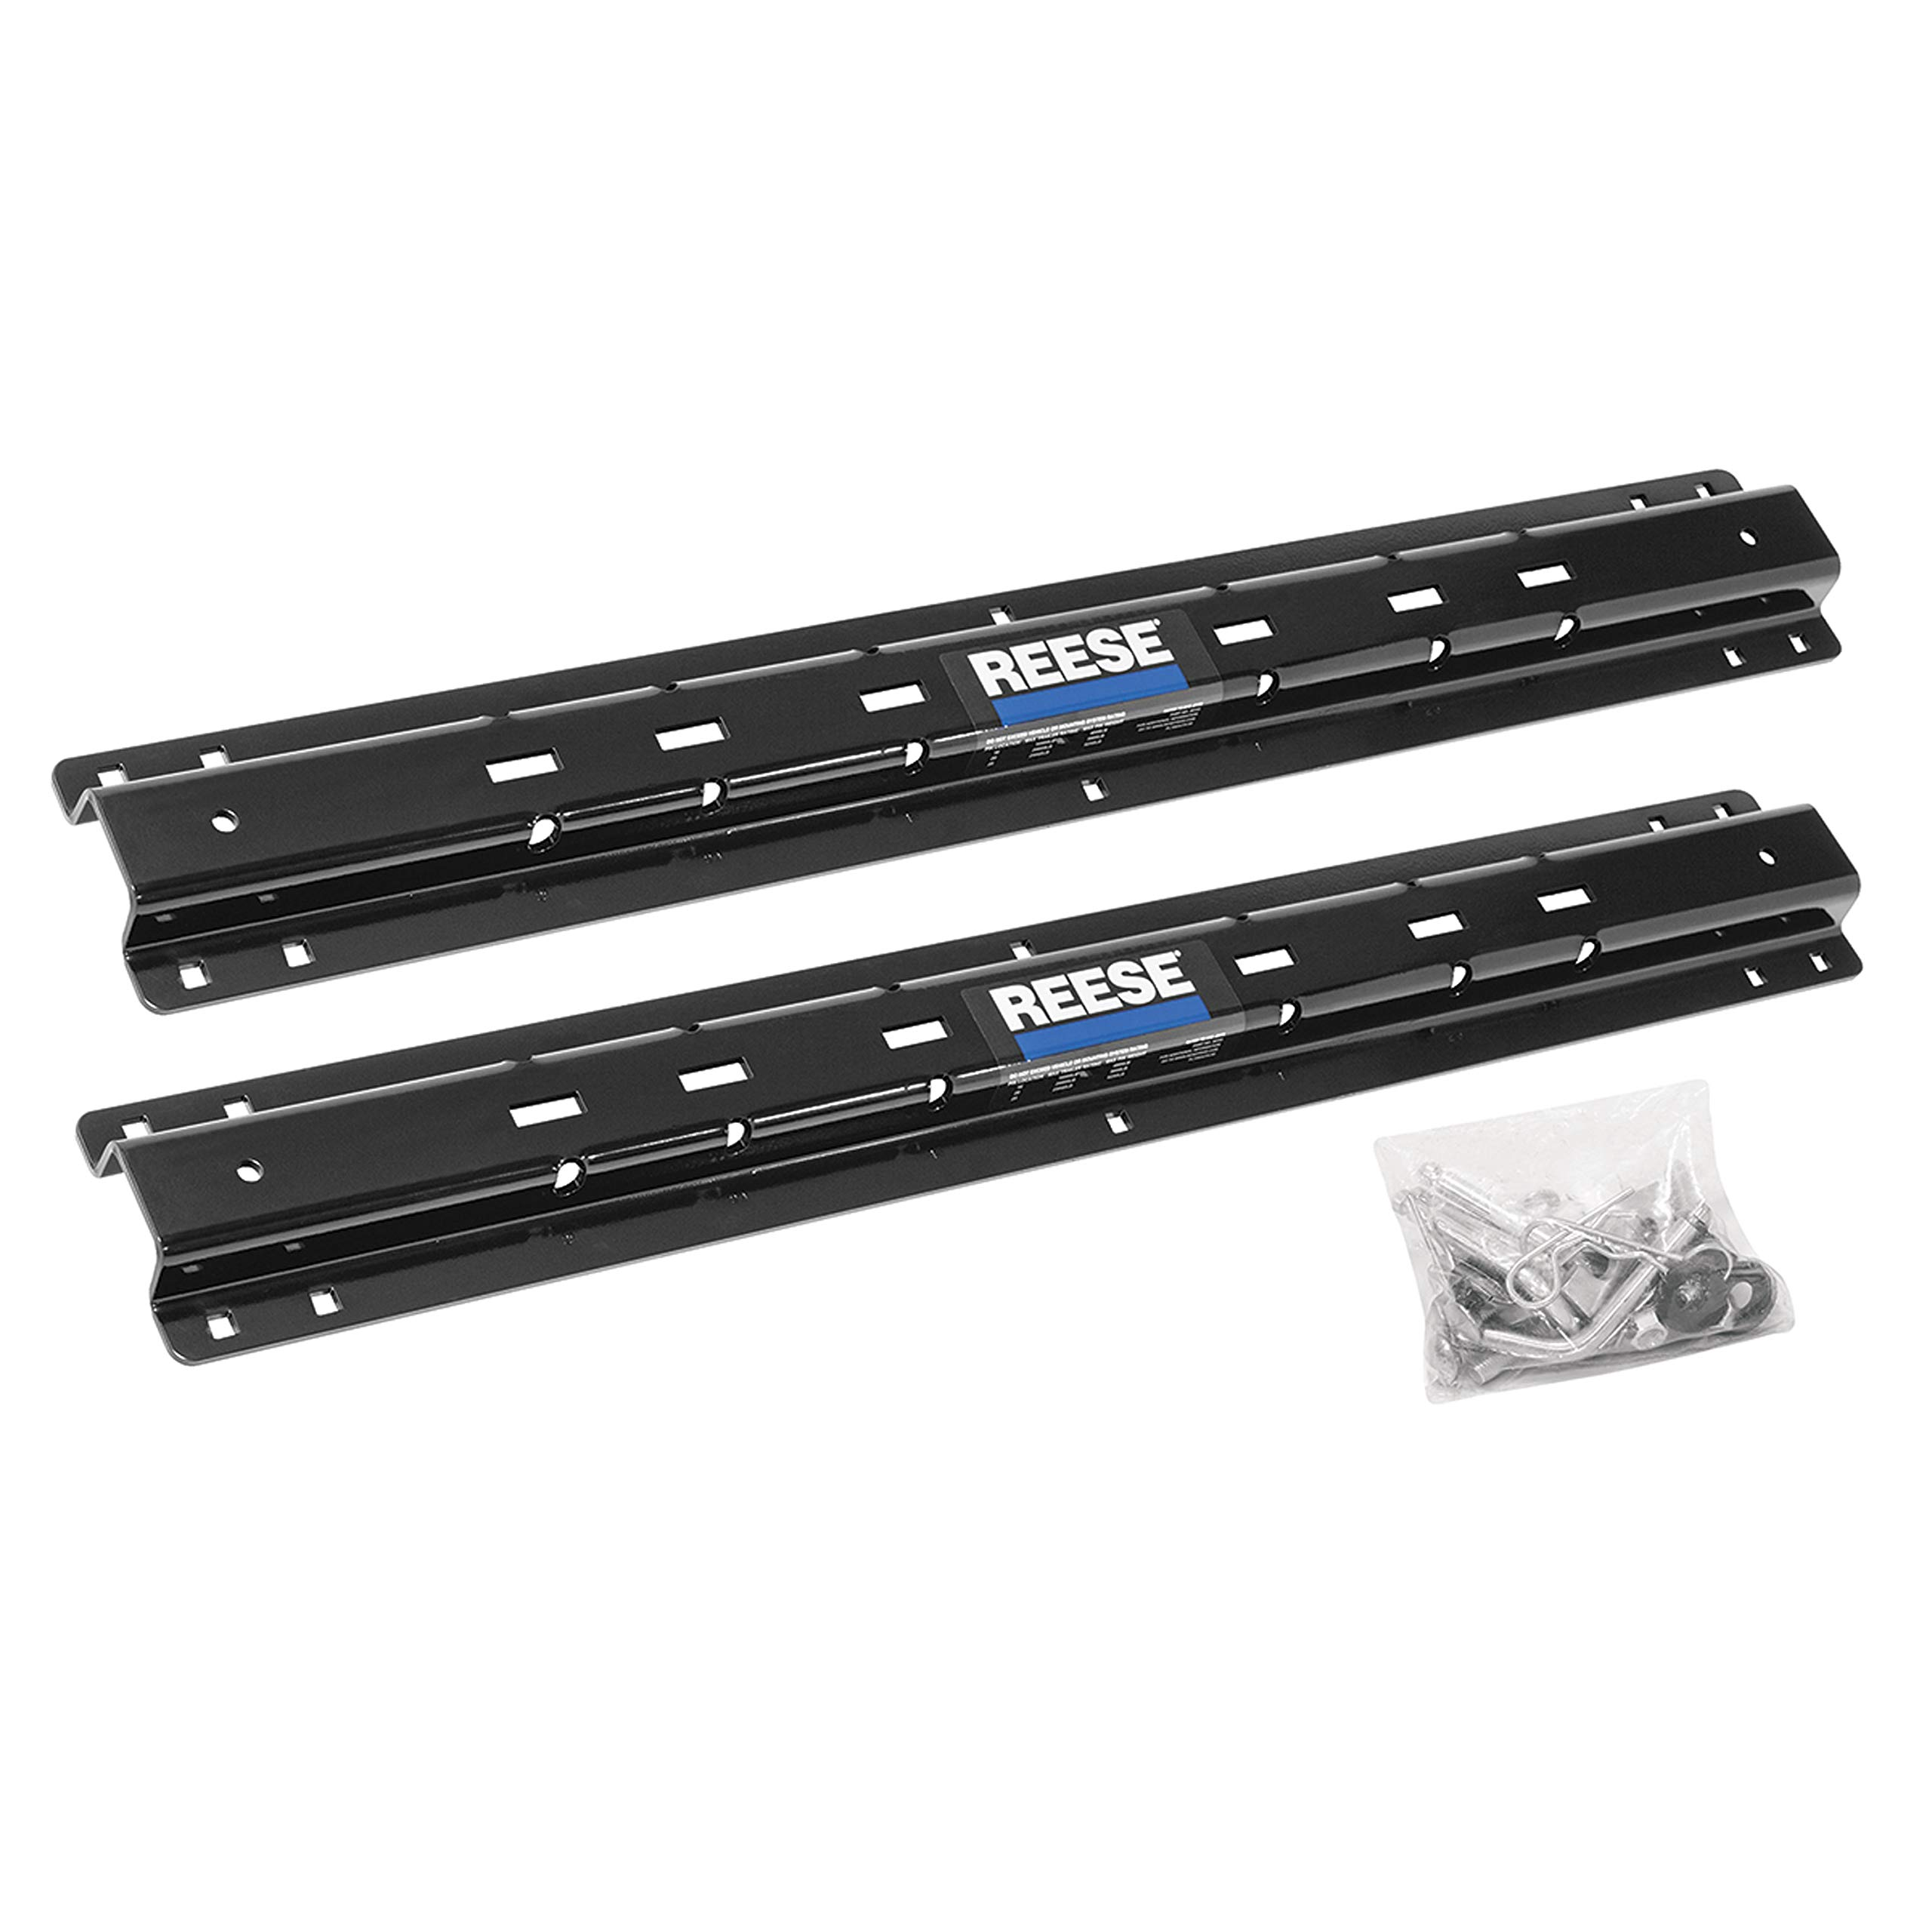 Reese 30153 Rail & Installation Kit F/R by Reese